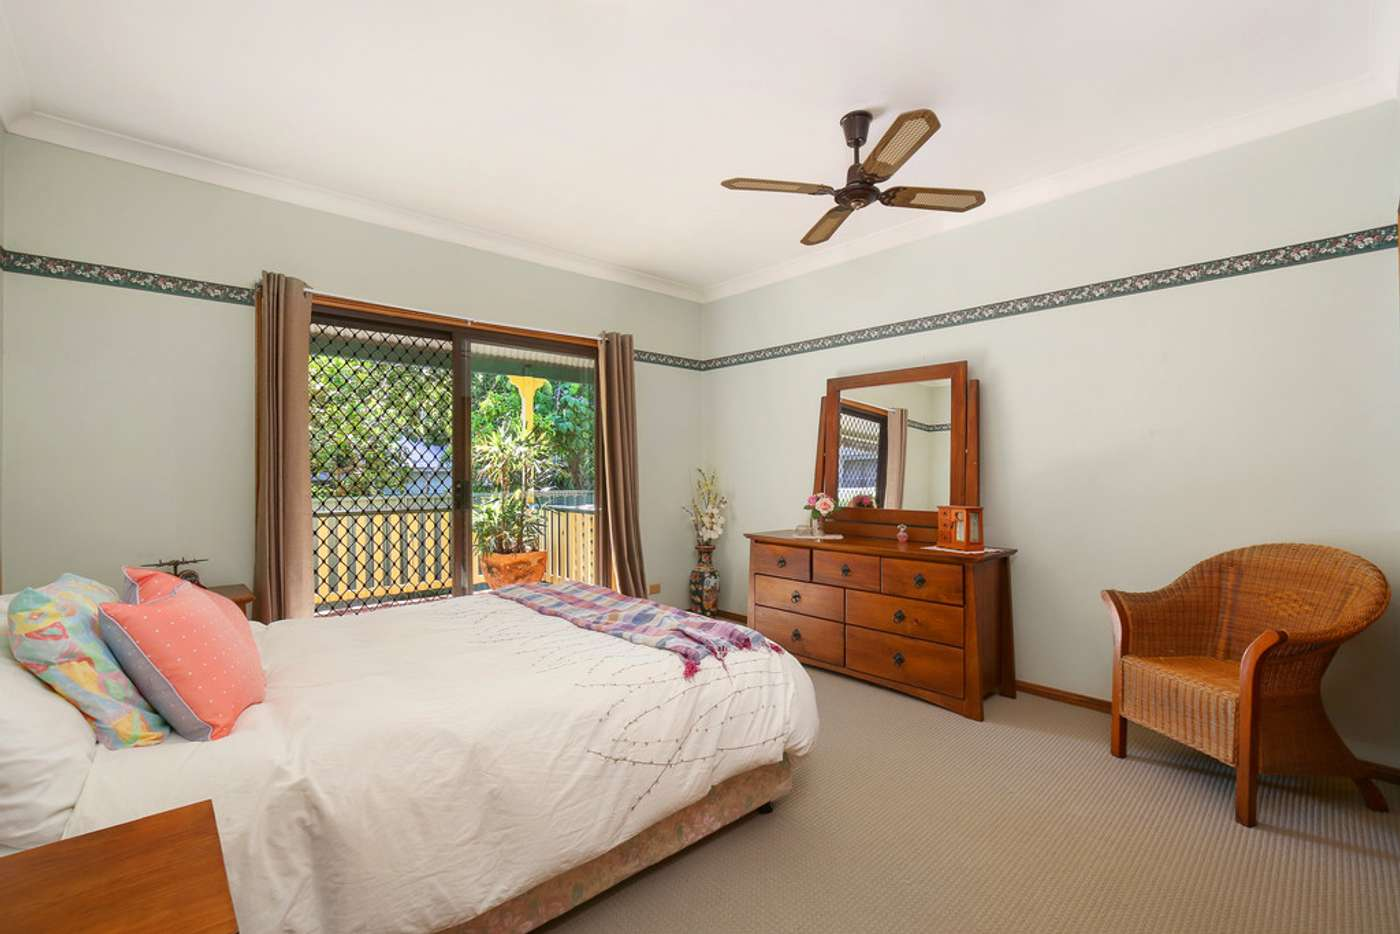 Sixth view of Homely house listing, 64 Huntly Road, Bensville NSW 2251